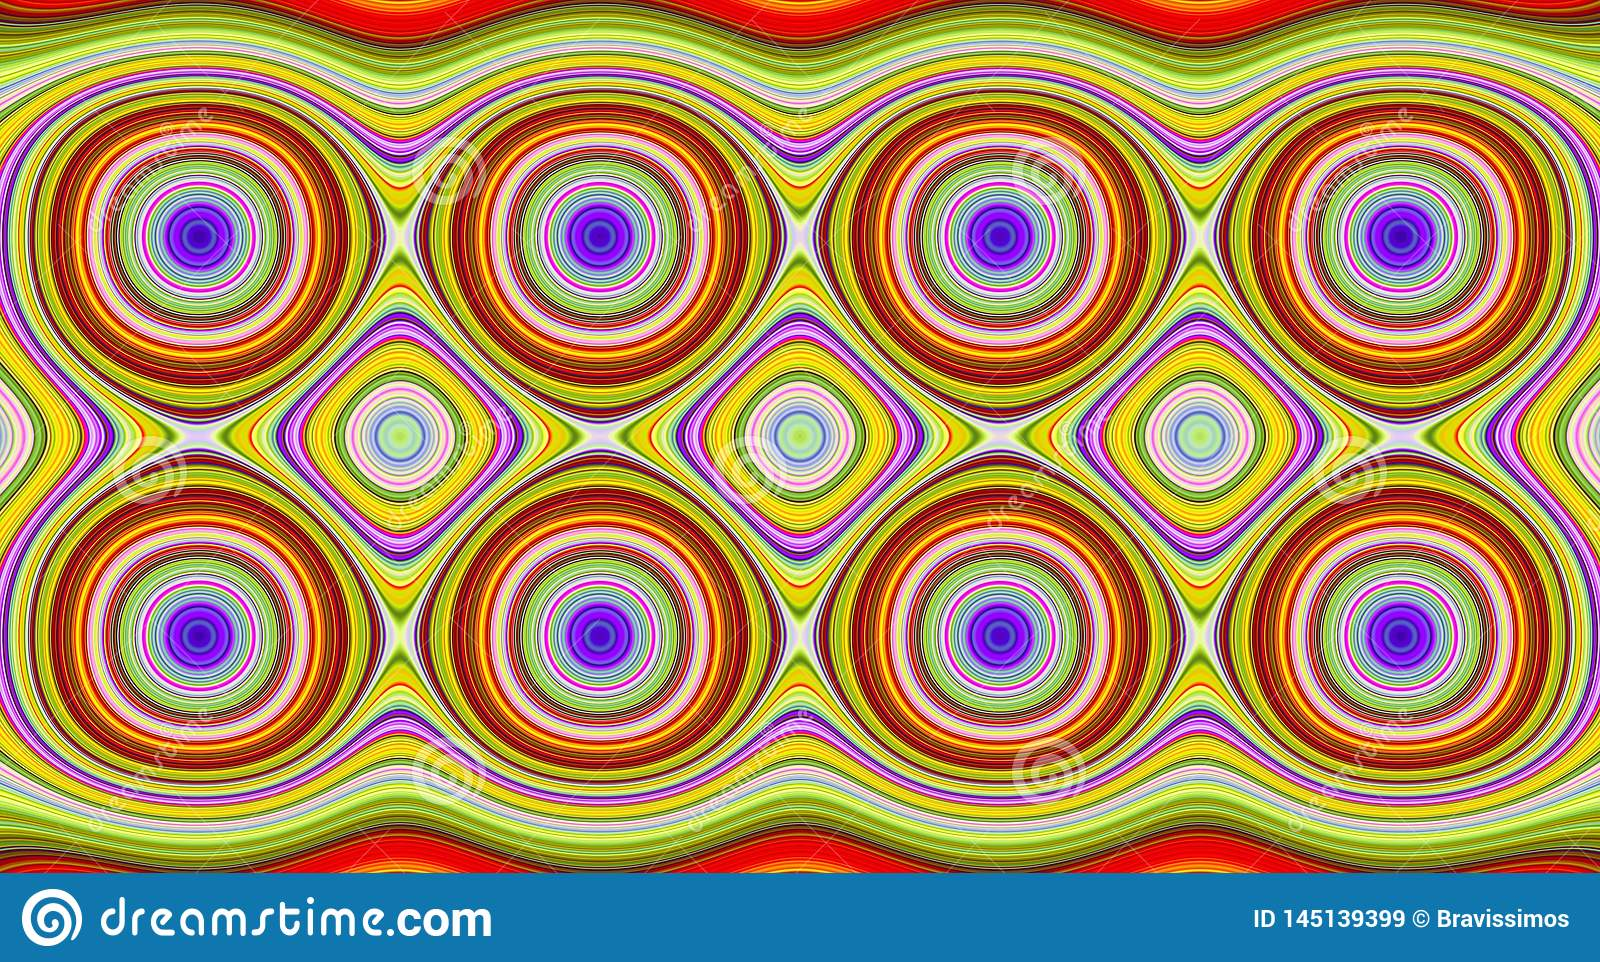 Psychedelische symmetrie abstract patroon en hypnotic achtergrond, werveling